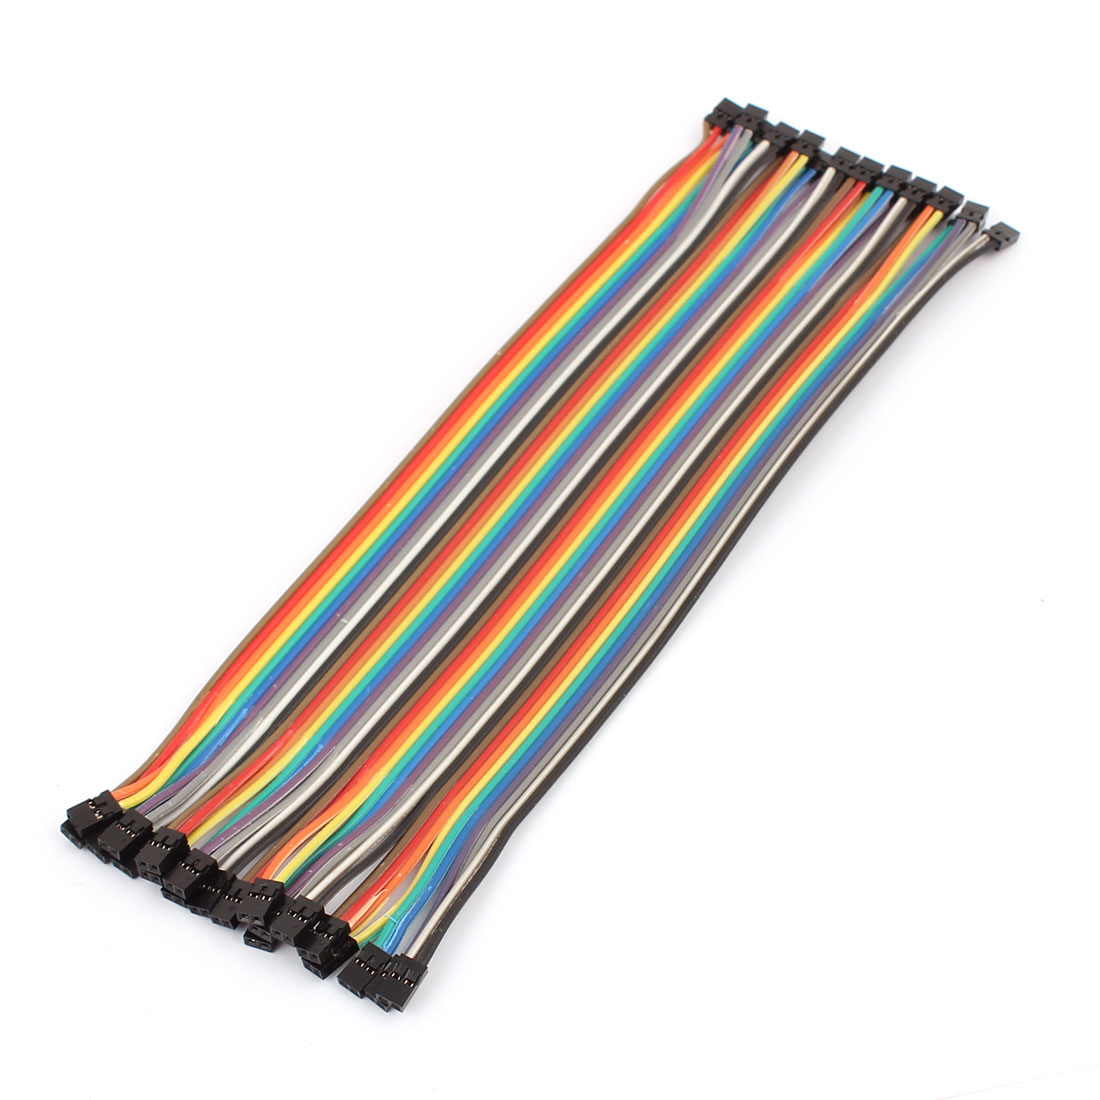 2.0mm to 2.0mm Female Connector 40P Breadboard Double Head Jumper Wire Cable 20cm Length